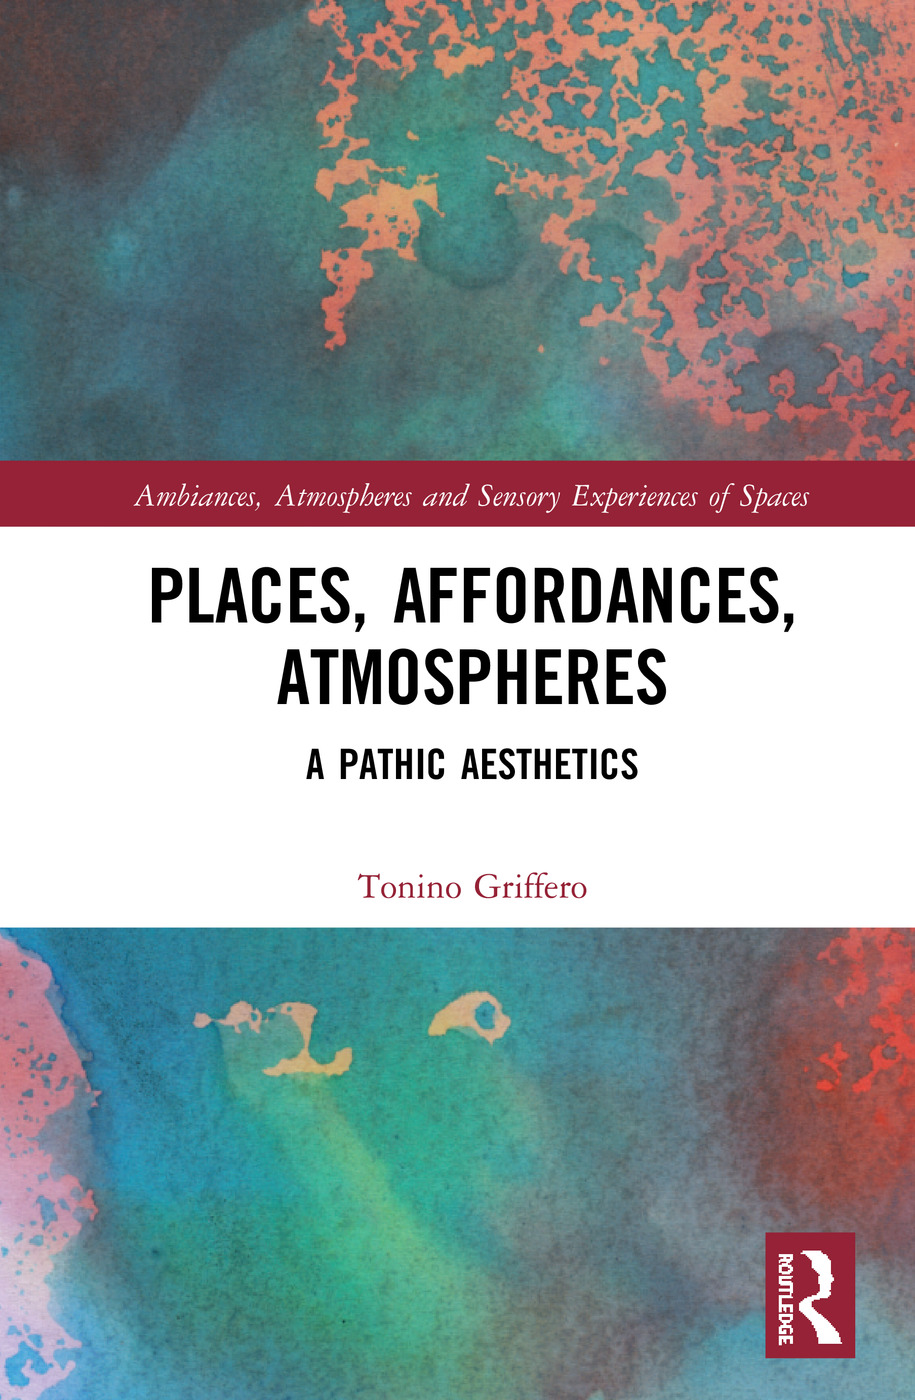 Places, Affordances, Atmospheres: A Pathic Aesthetics book cover